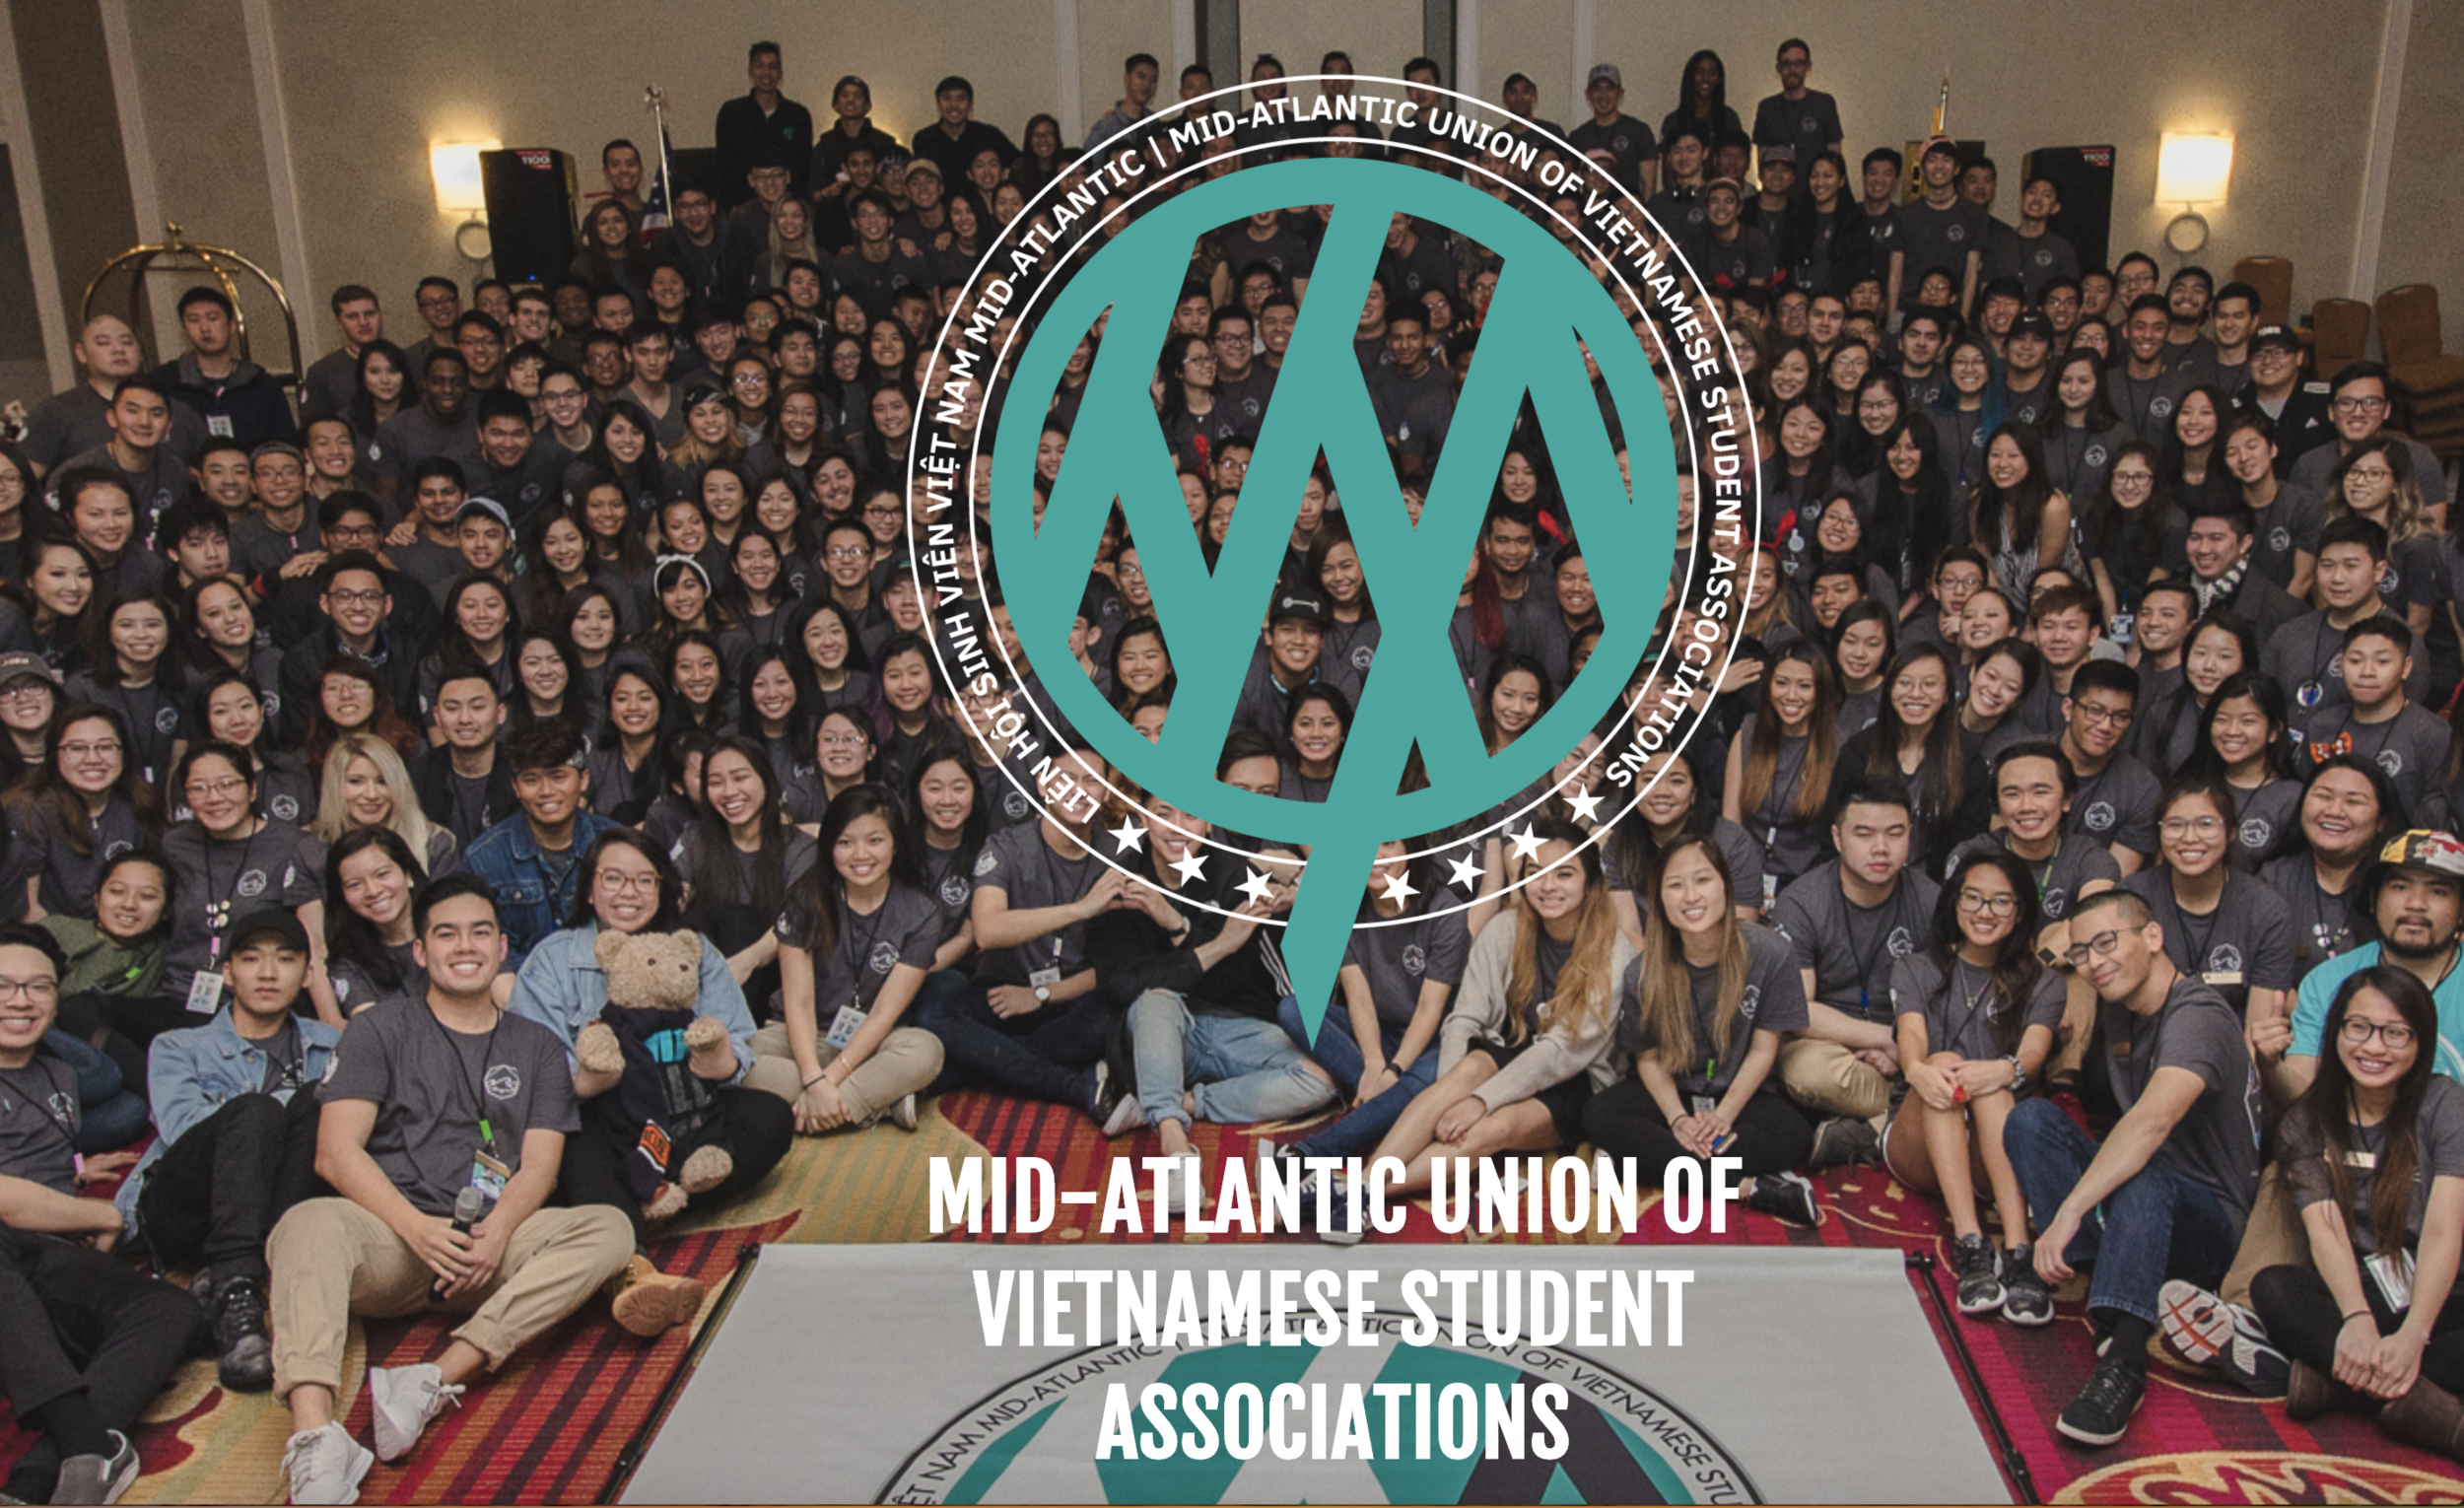 """MAUVSA - """"MAUVSA […] unifies the Vietnamese Student Associations (VSAs) of the Mid-Atlantic region, and empowers young Vietnamese Americans by fostering cultural awareness, promoting social justice, and developing leadership."""""""